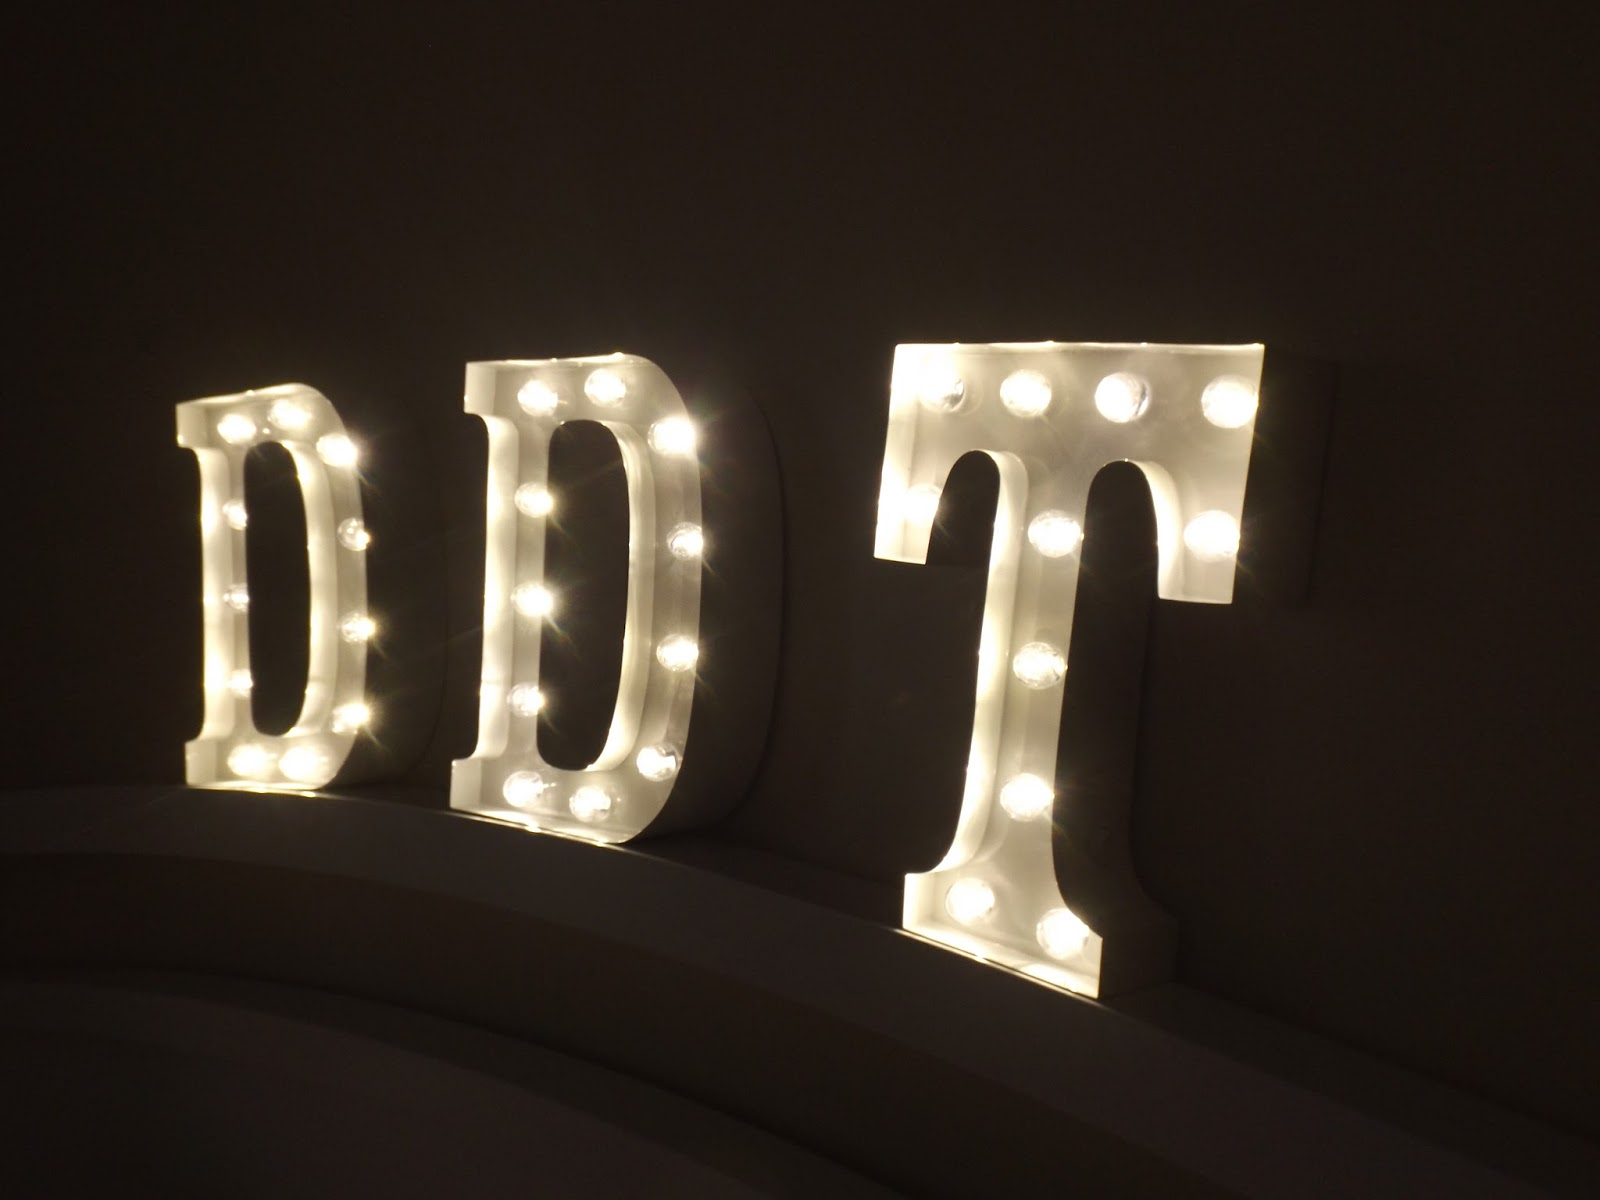 letter amazon online india vintage lights low prices lighting at marquee in dp dazory buy light